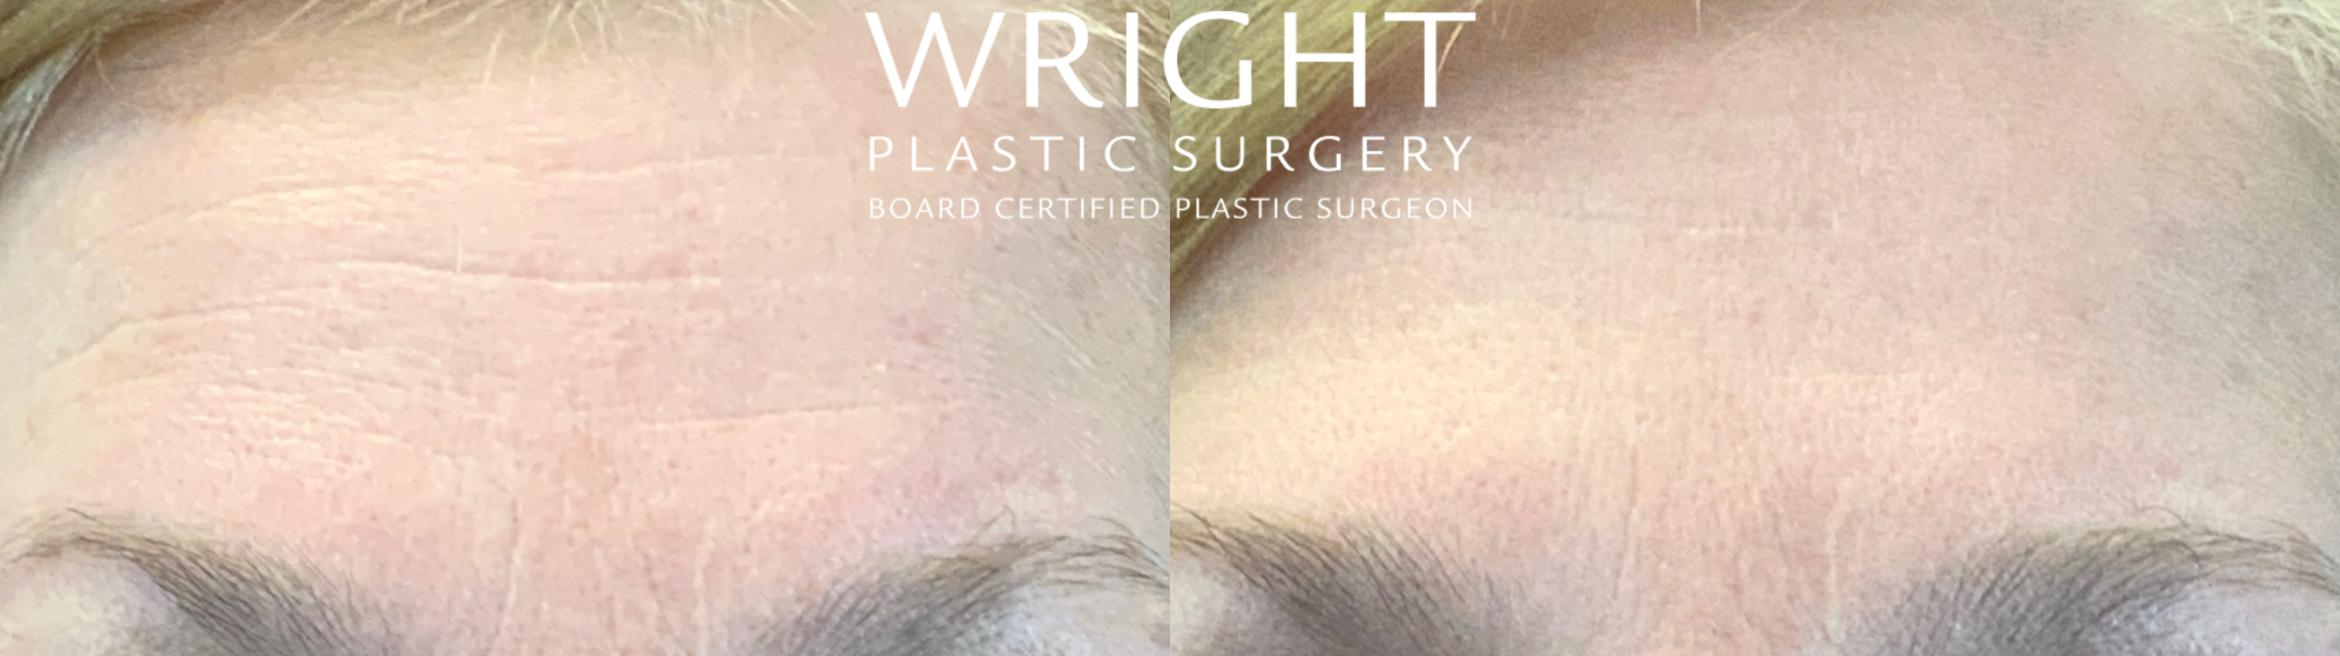 BOTOX® Cosmetic Case 53 Before & After Front | Little Rock, Arkansas | Dr. Wright Plastic Surgery